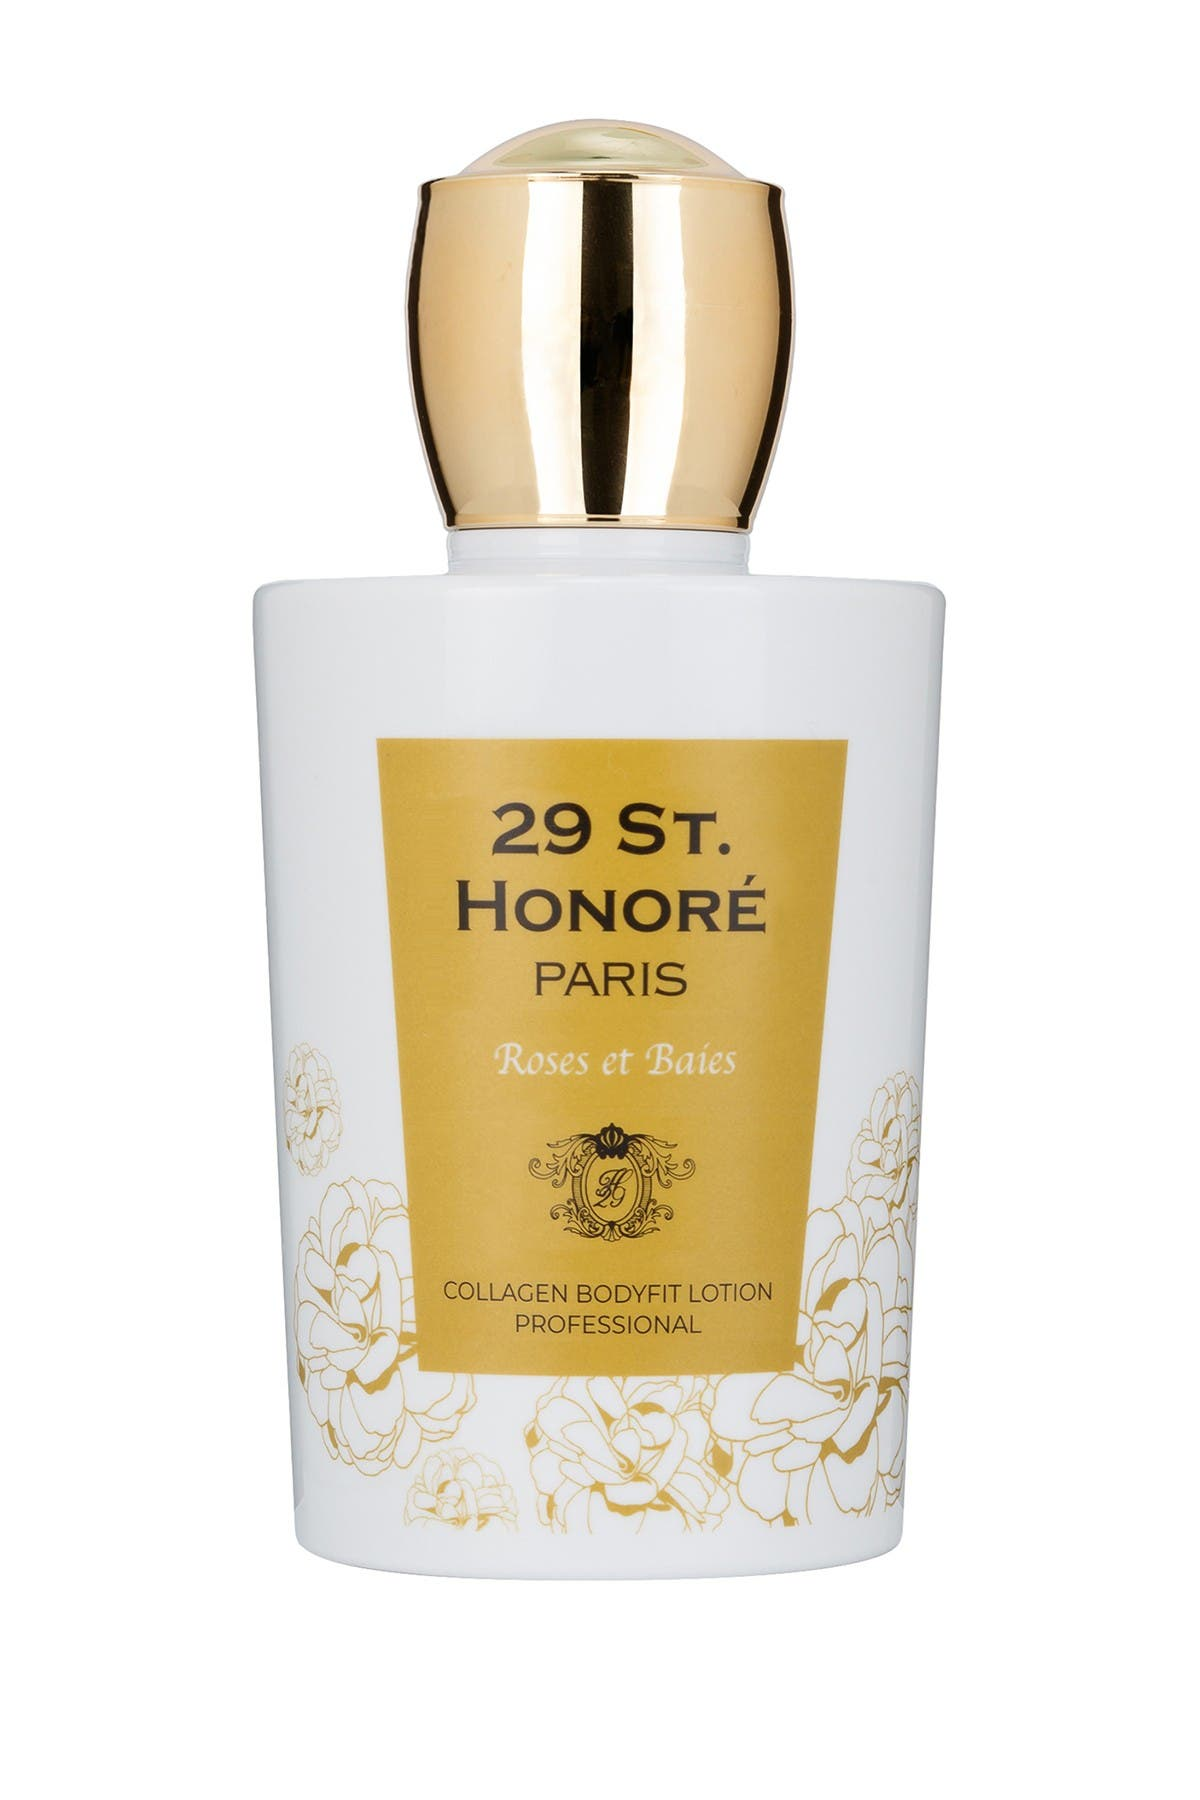 Image of 29 St. Honore Collagen Bodyfit Lotion Professional - Roses & Baises